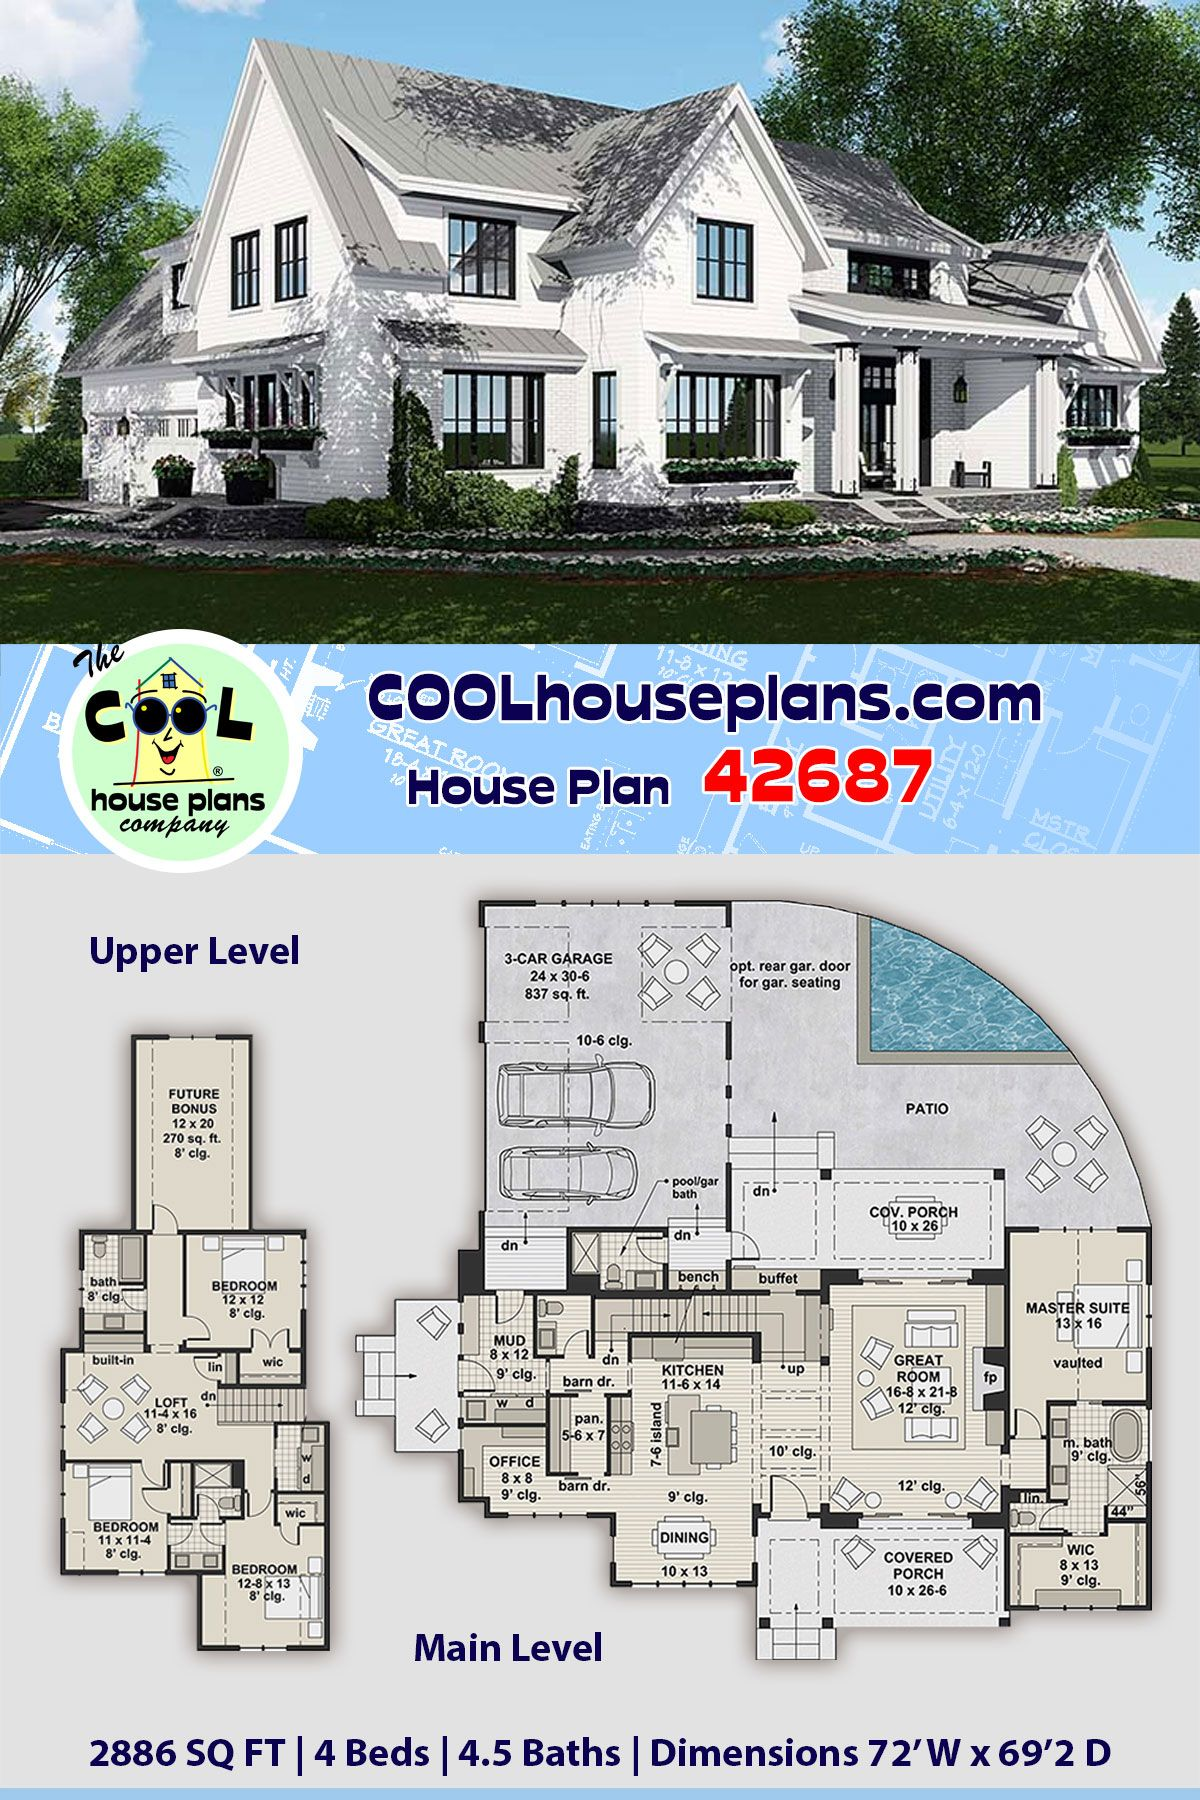 Traditional Style House Plan 42687 With 4 Bed 5 Bath 3 Car Garage In 2020 House Plans Farmhouse Pool House Plans House Plans